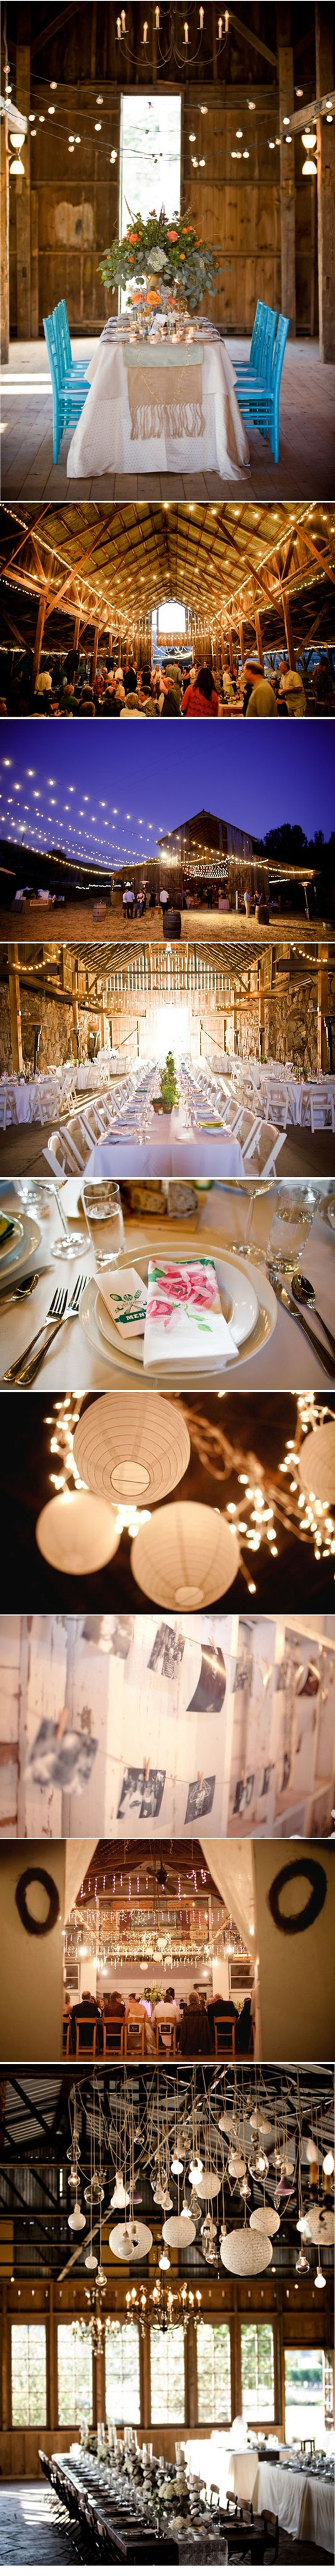 i keep coming back to this outdoorsy, barn wedding. why?! for whatever reason, i love all of these ideas!